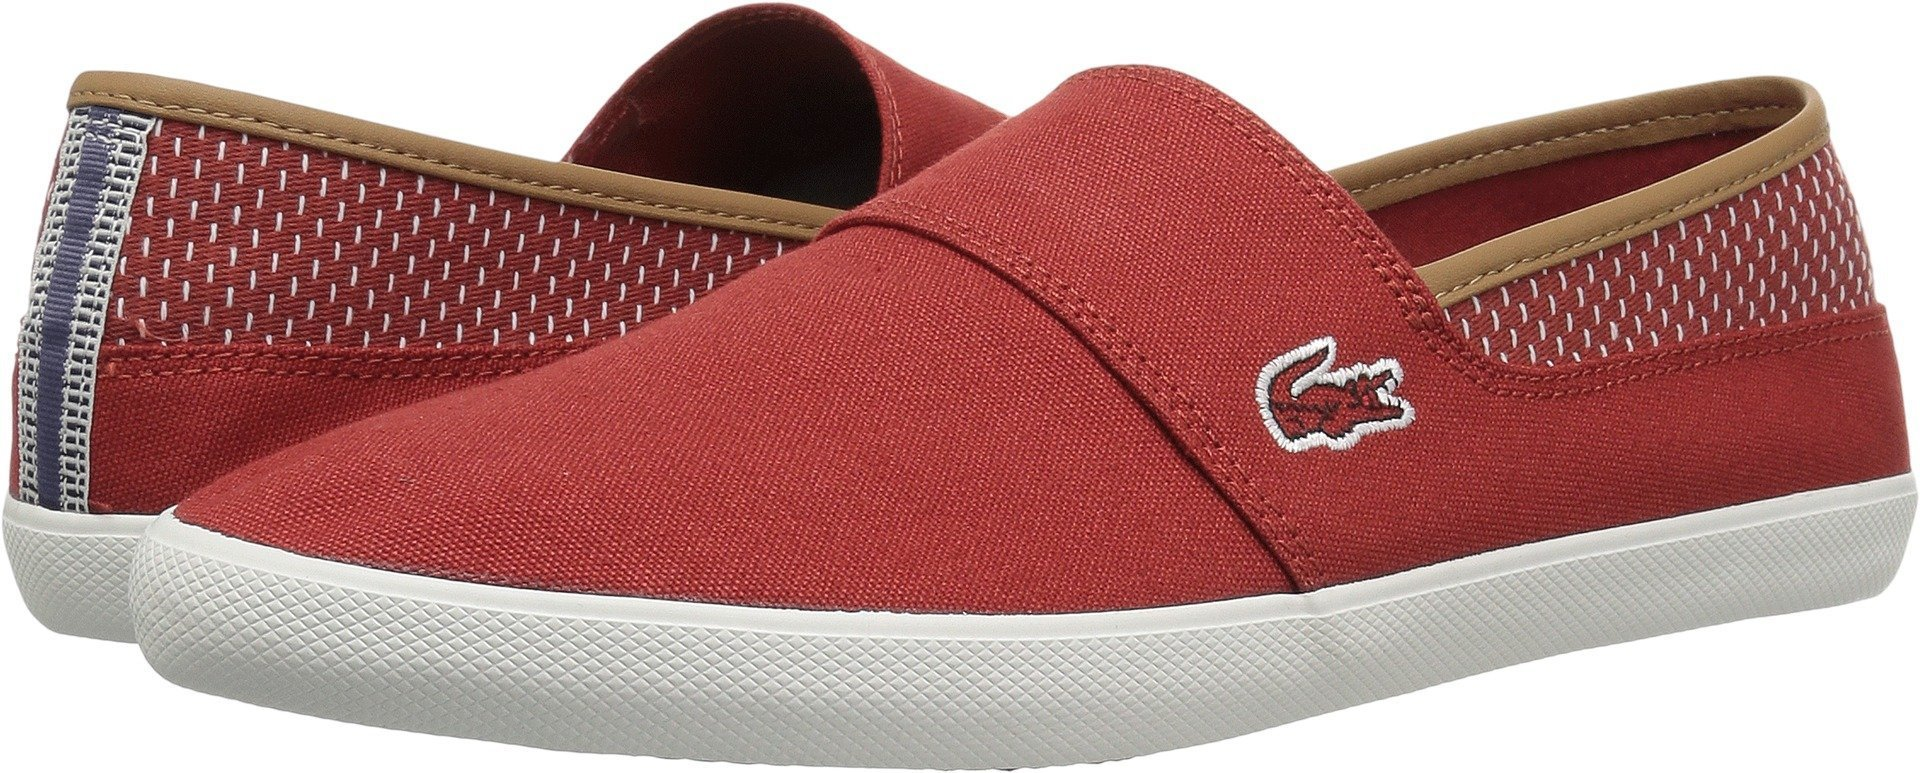 Lacoste Men's Marice Slip-ons, Red/Ltbrw cotton canvas, 10.5 M US